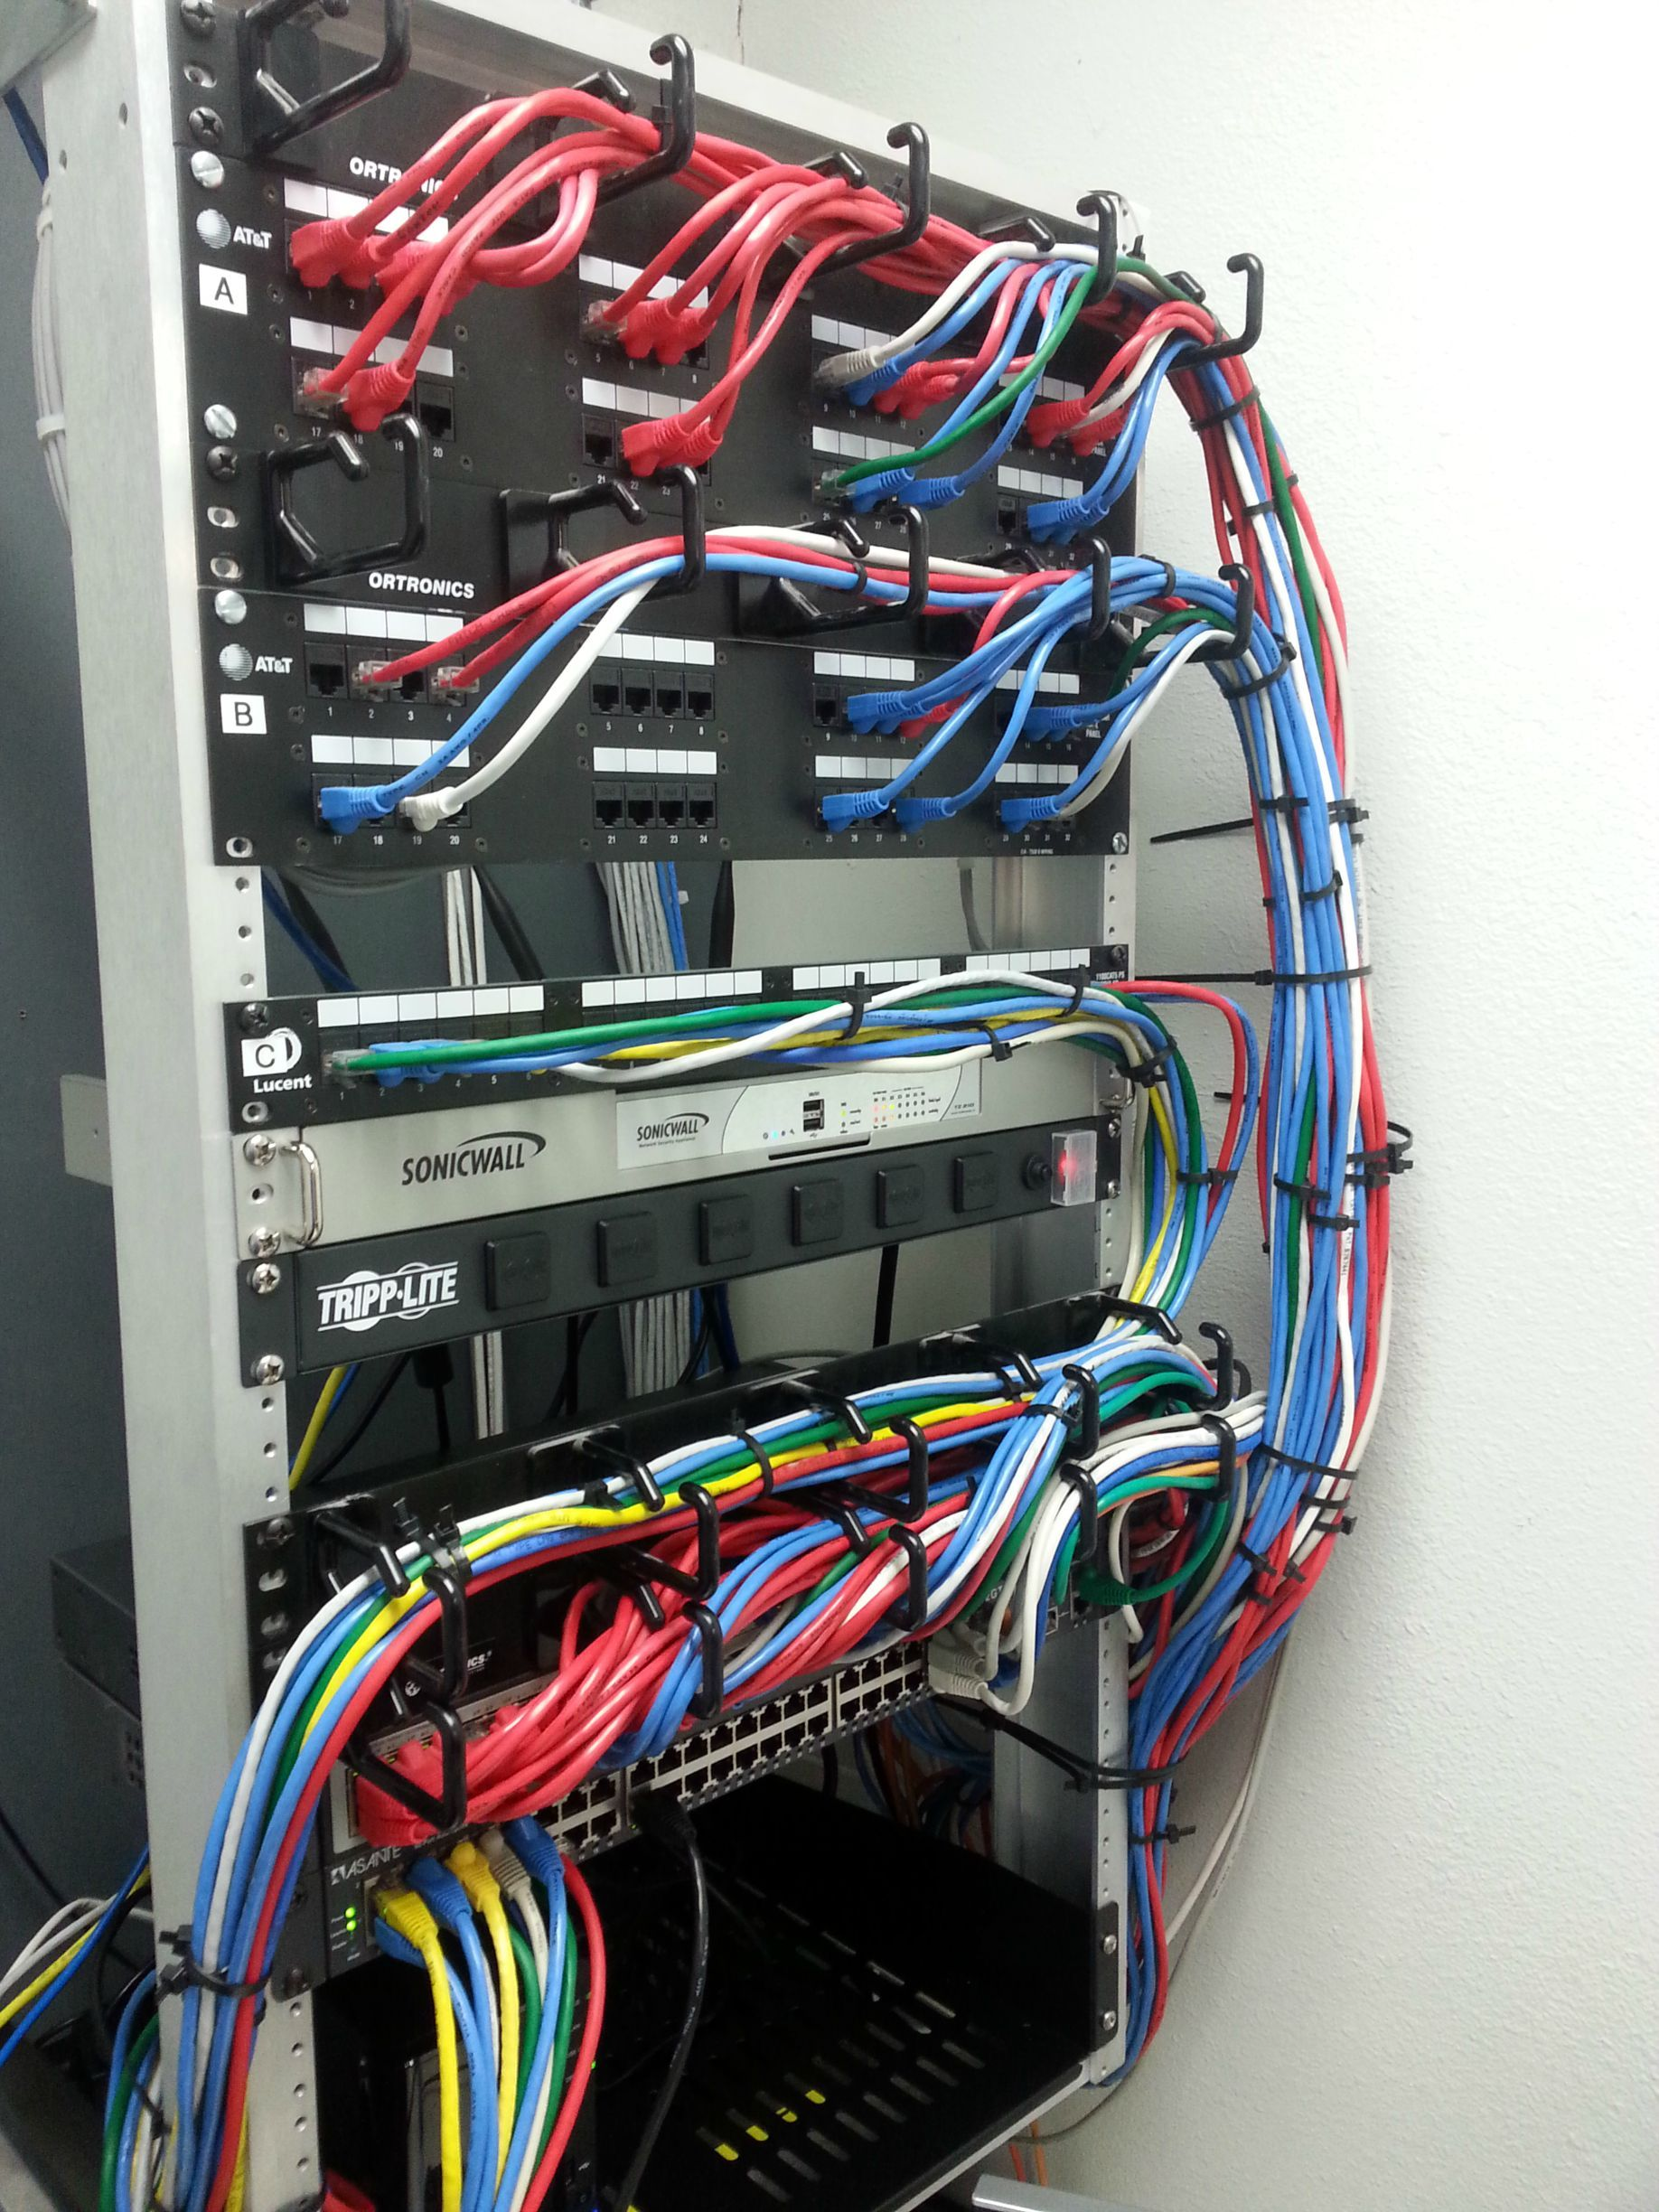 Small Office Cableporn In 2018 Cable Management Pinterest Wiring Multiple Ethernet Switches Patch Panel From Two 48 Port Simple And Effective But Relies